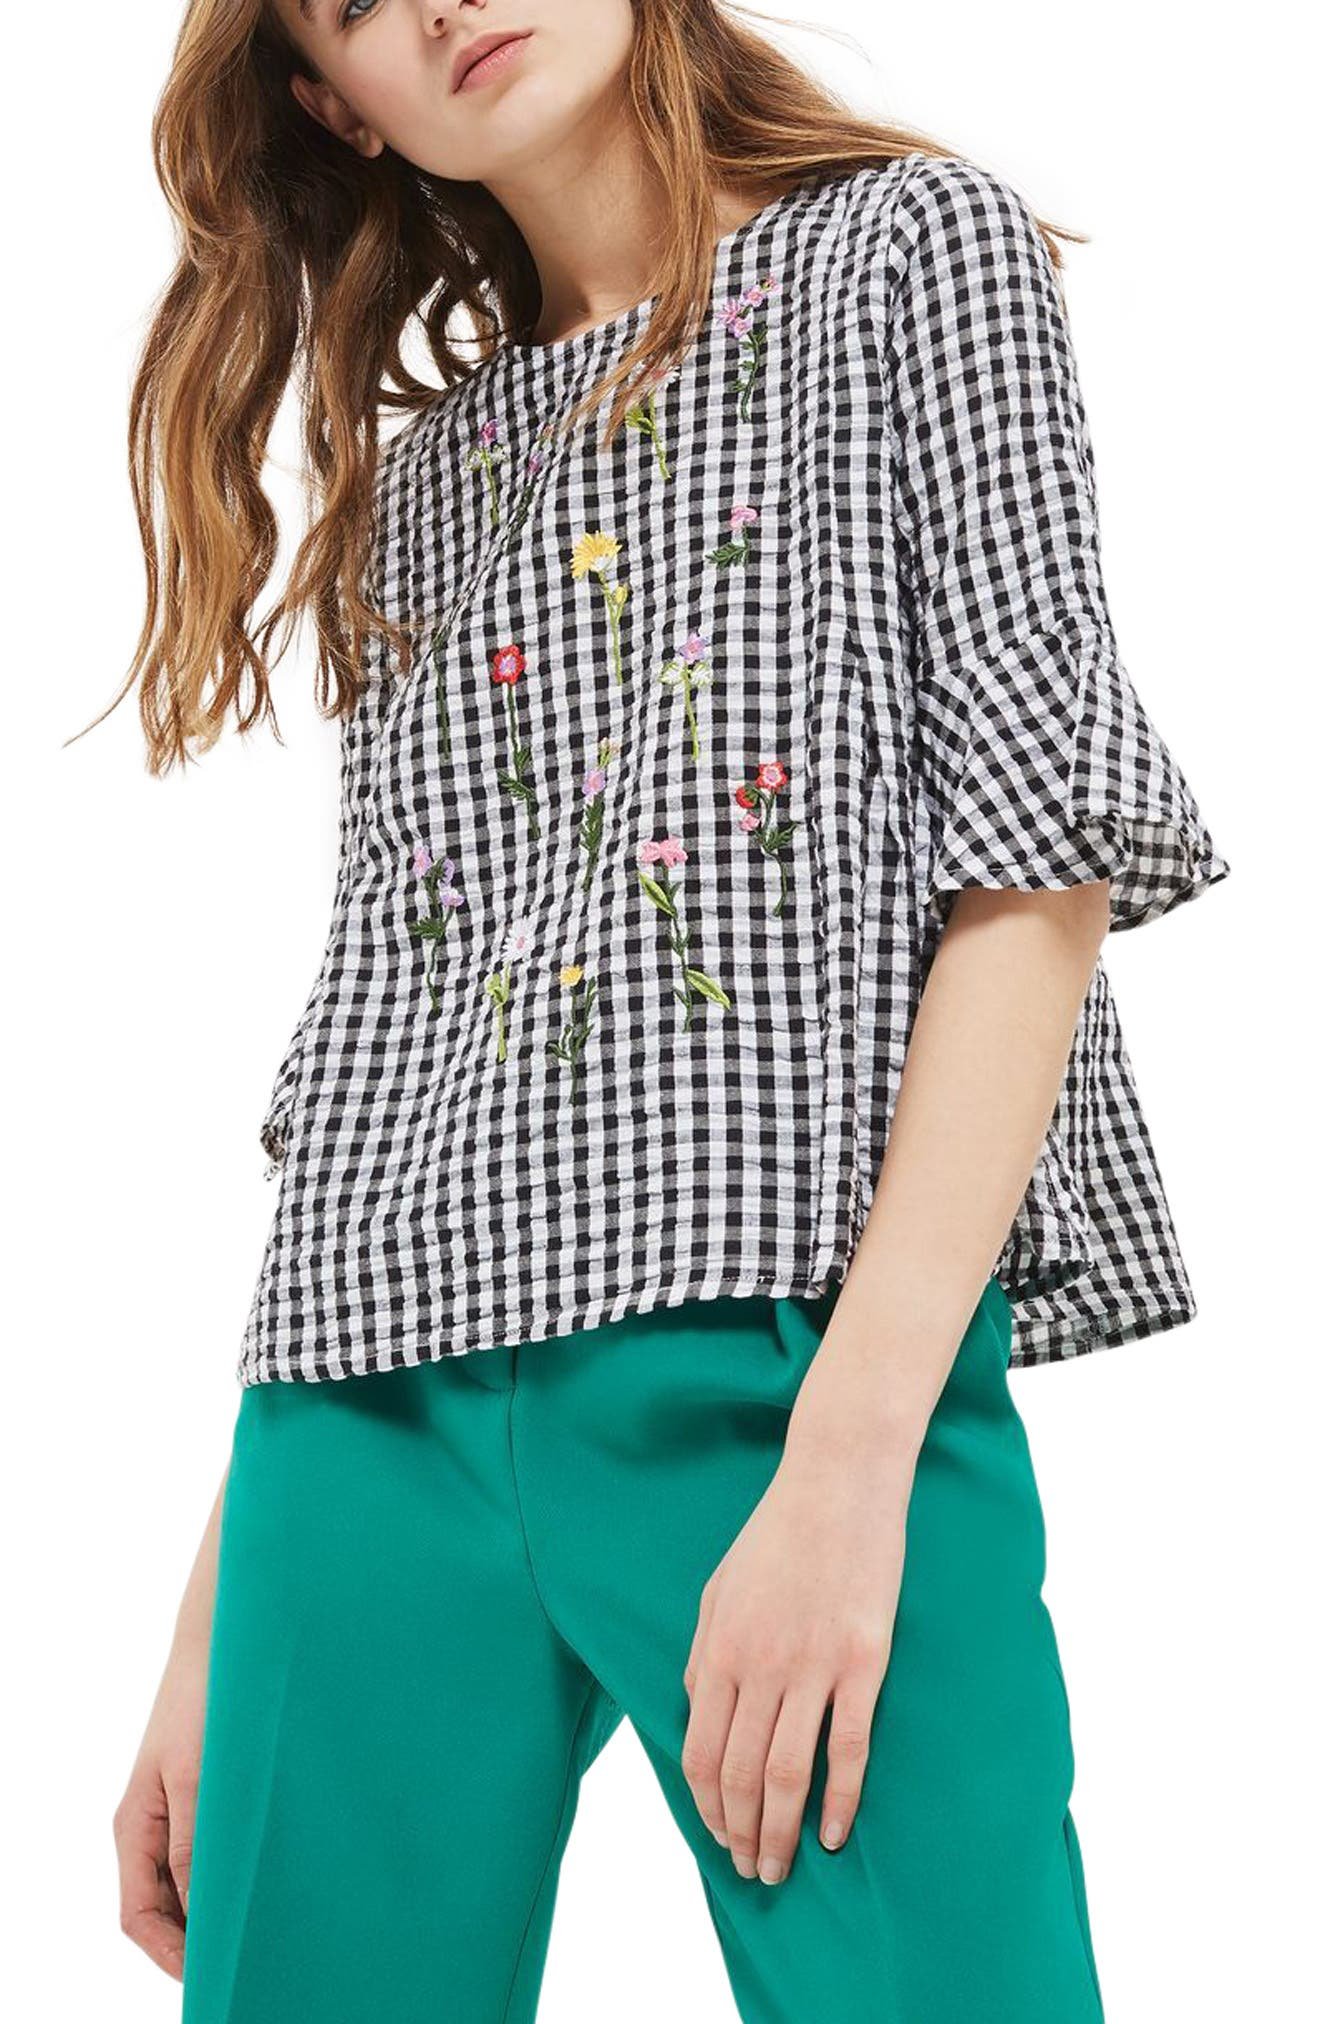 Alternate Image 1 Selected - Topshop Embroidered Gingham Top